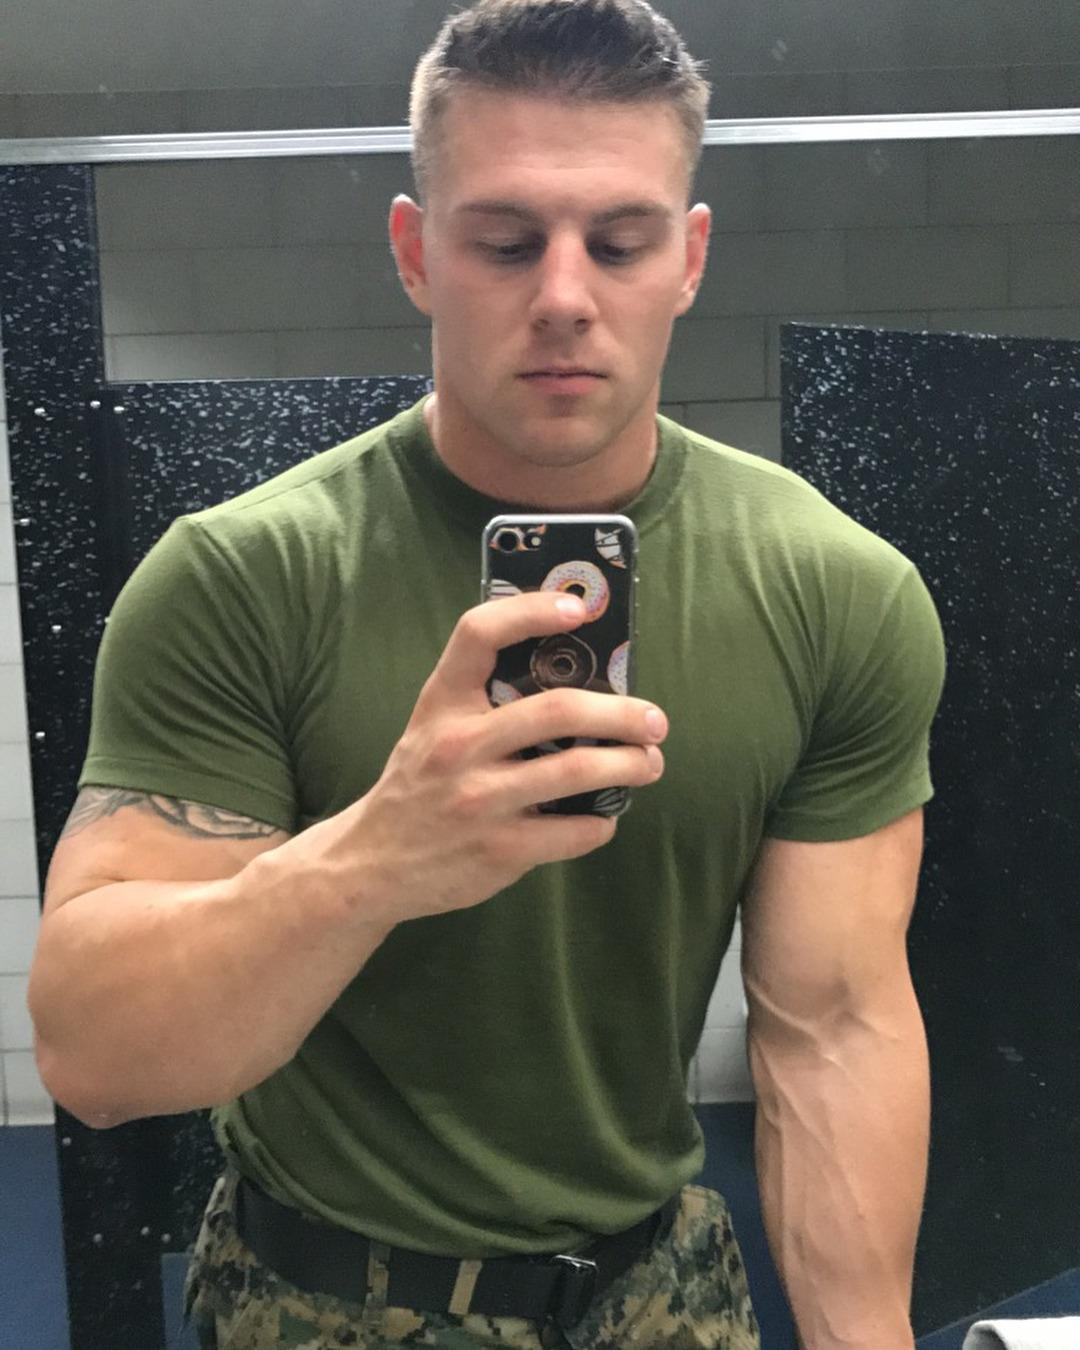 strong-handsome-veiny-young-soldier-uniformed-masculine-marine-selfie